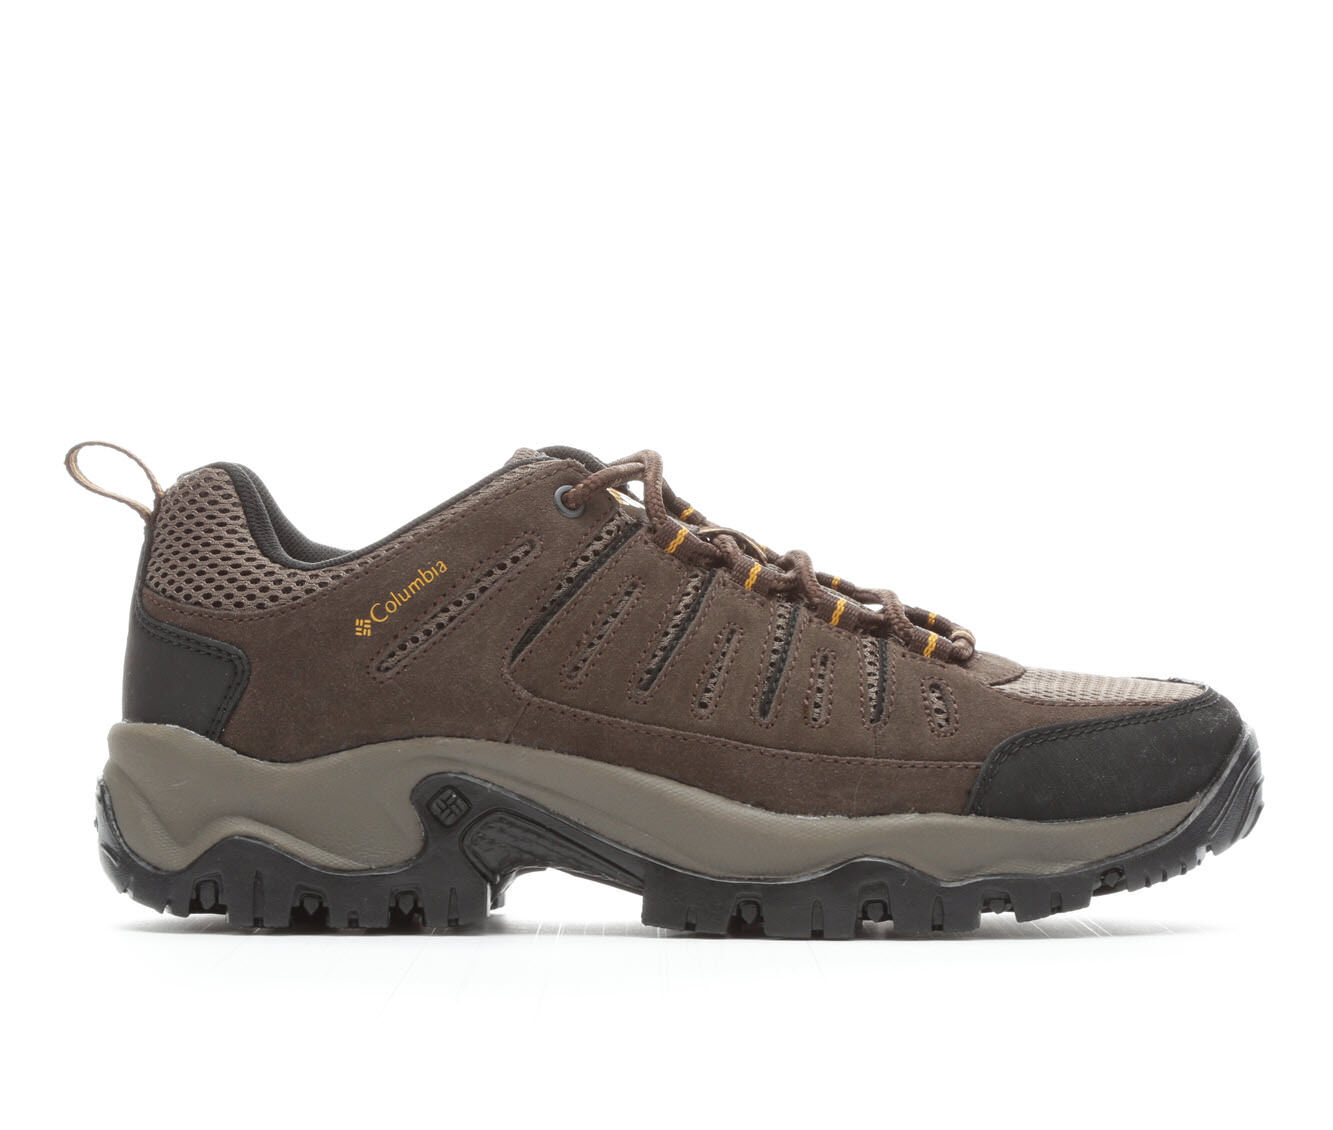 Men's Columbia Lakeview II Low Hiking Boots Cordovan/Mud